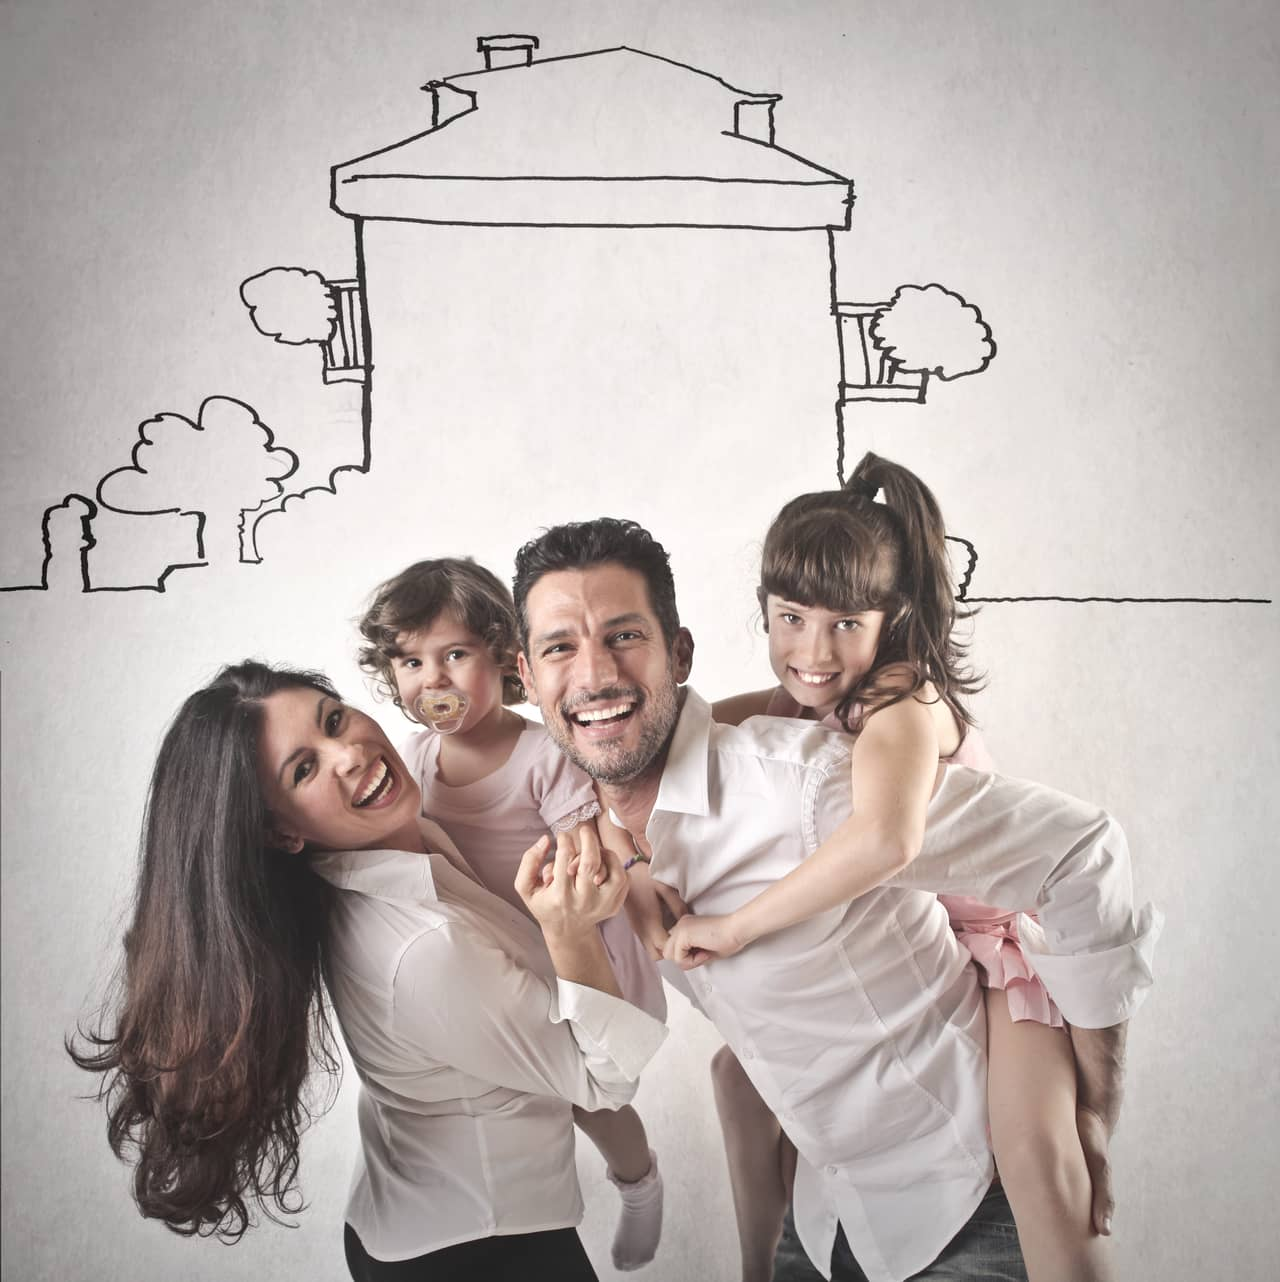 Family-bonding-time-a-mental-self-care-practice-for-menopause